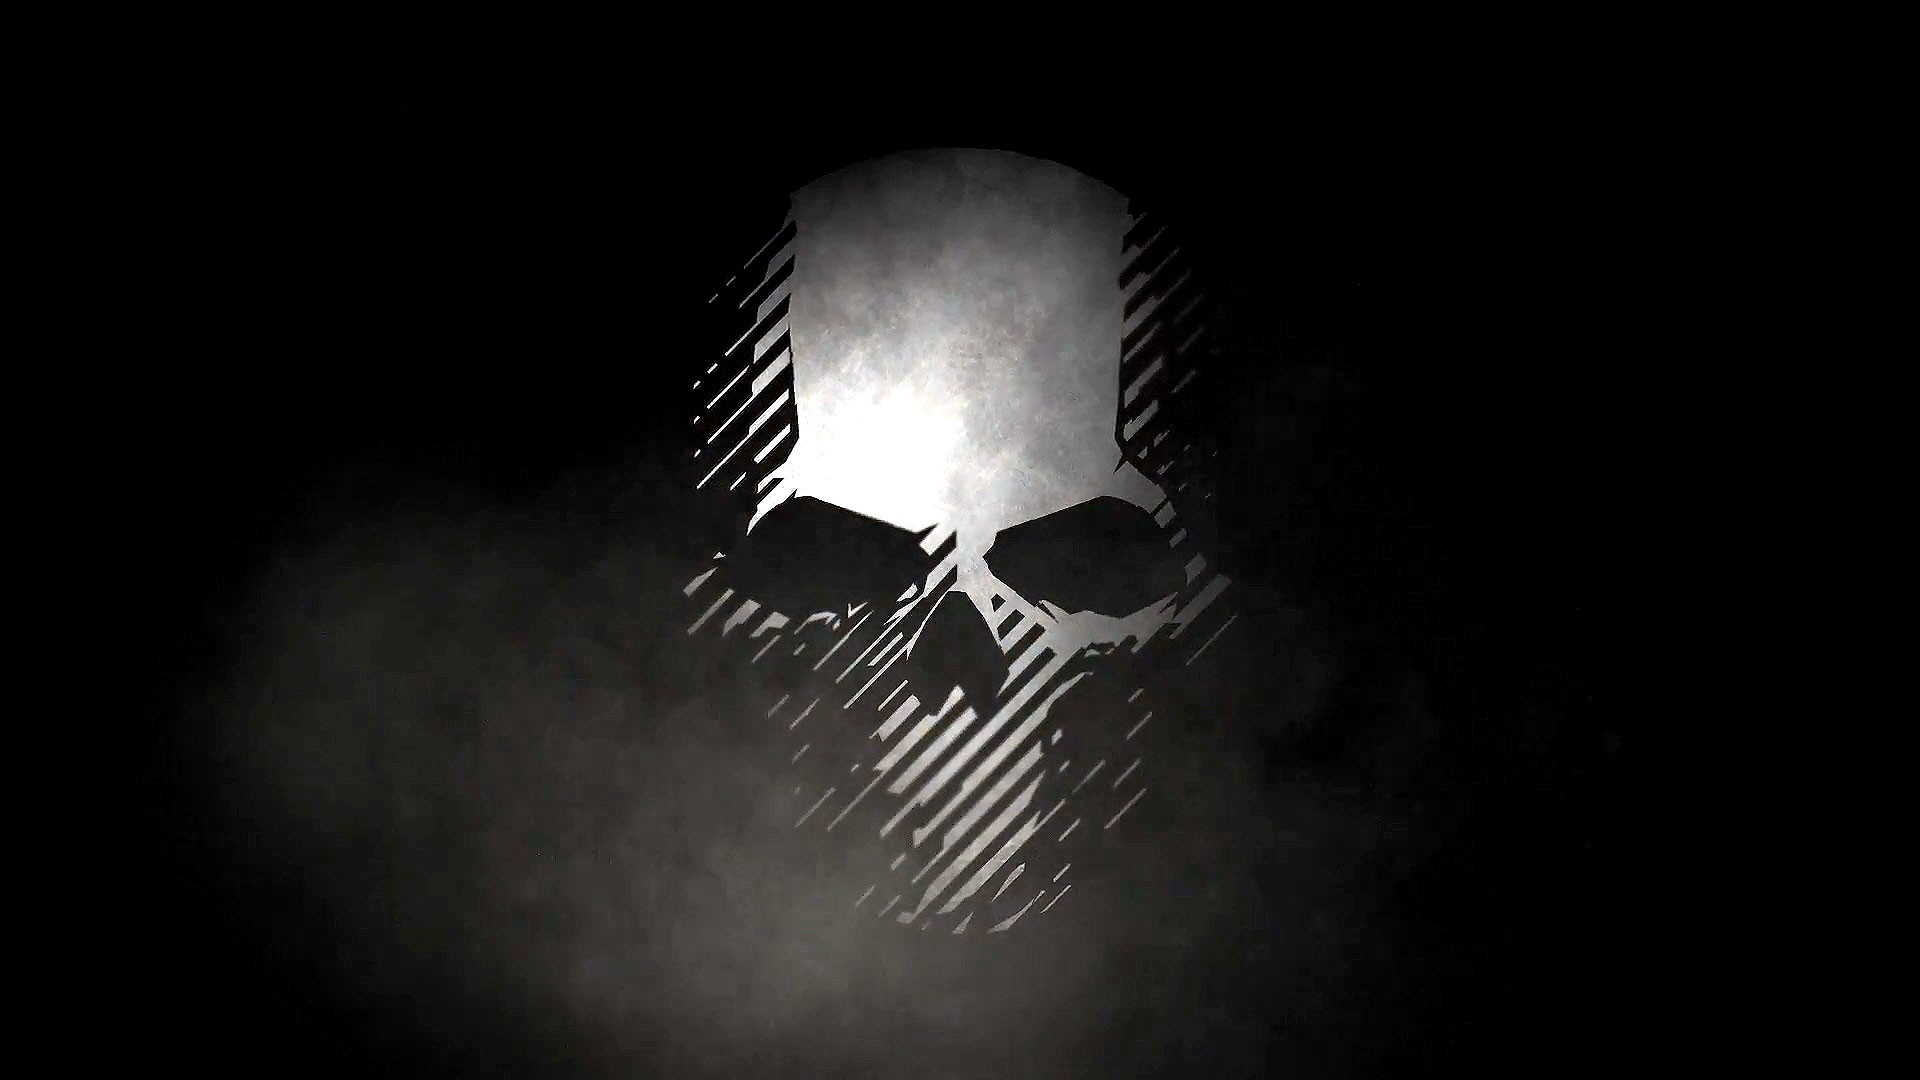 Ghost Recon Skull Wallpaper Wallpapertag